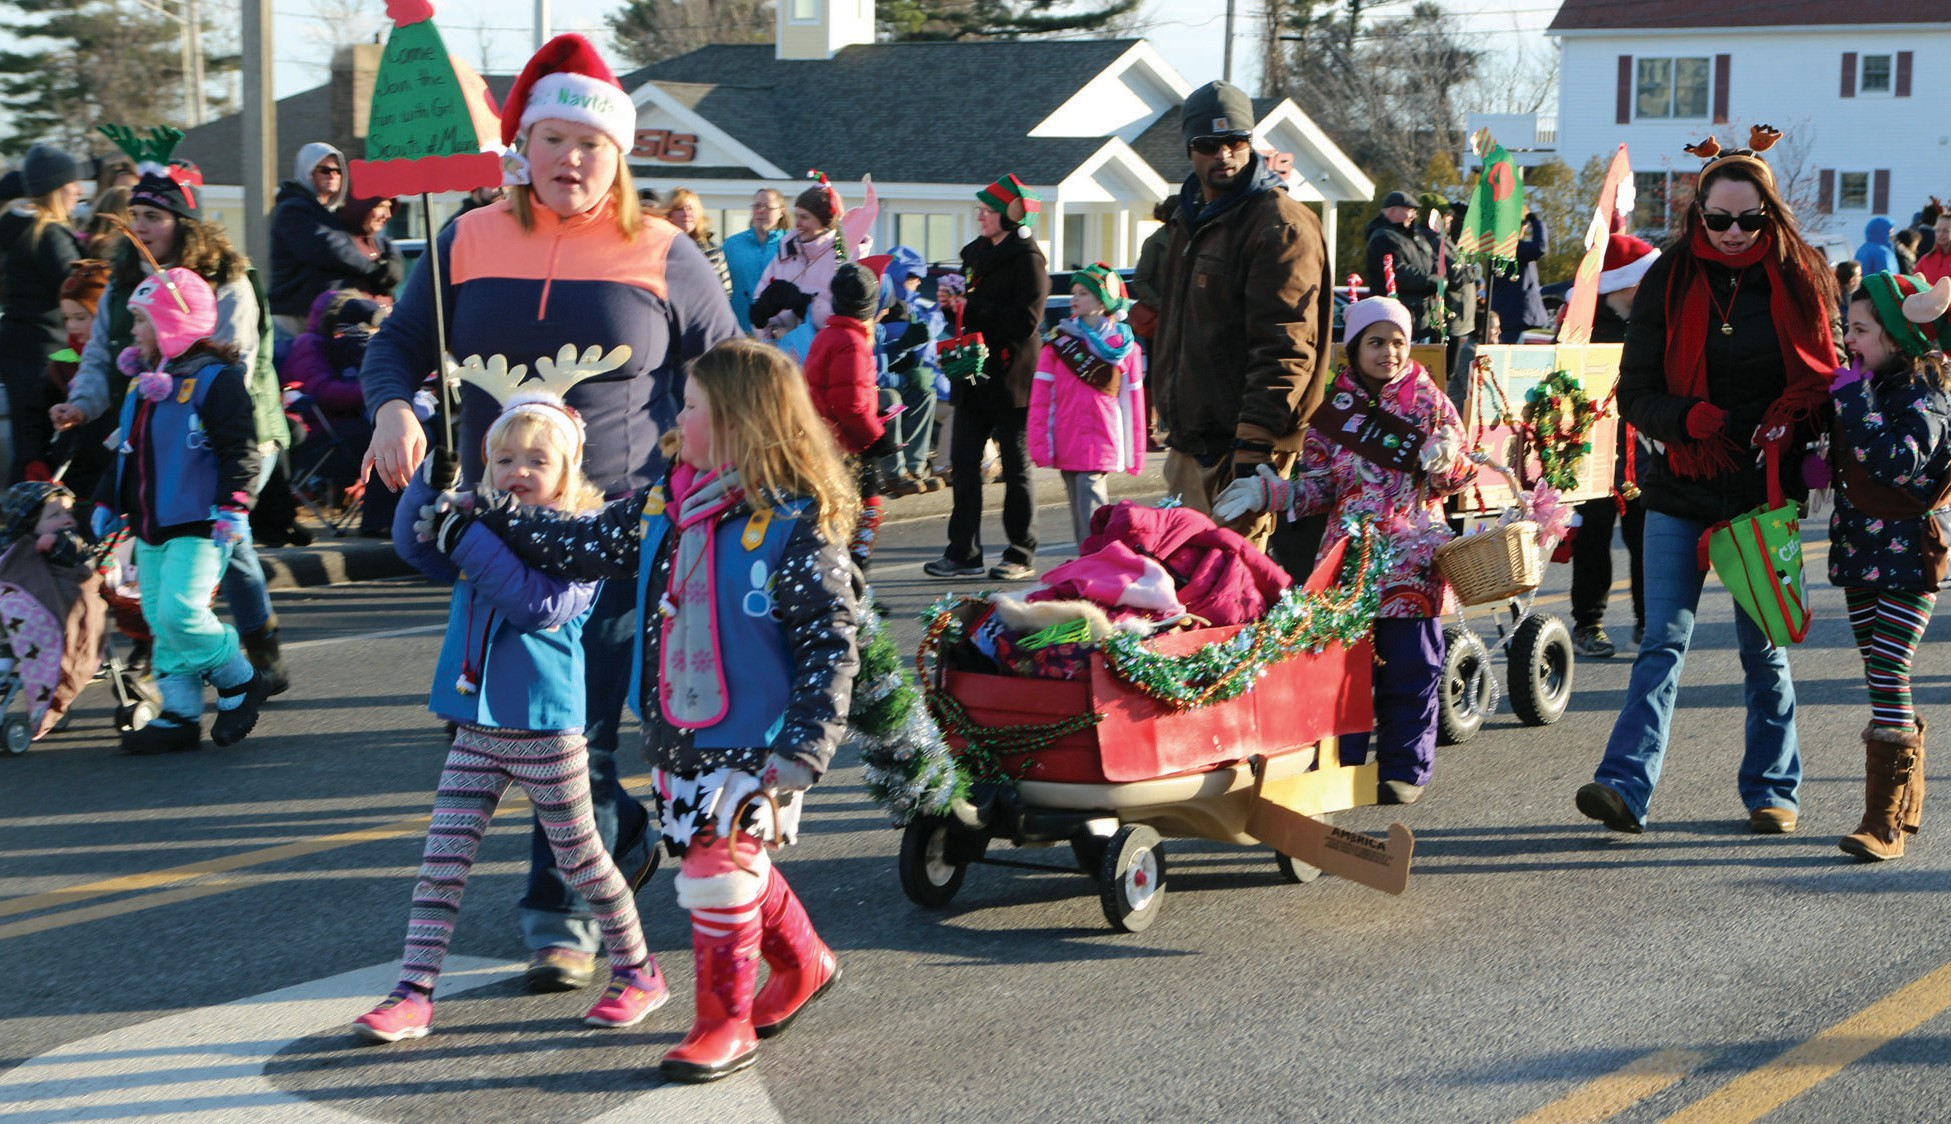 Many adults and kids marched in the Wells Christmas parade Sunday afternoon. //TAMMY WELLS/Journal Tribune